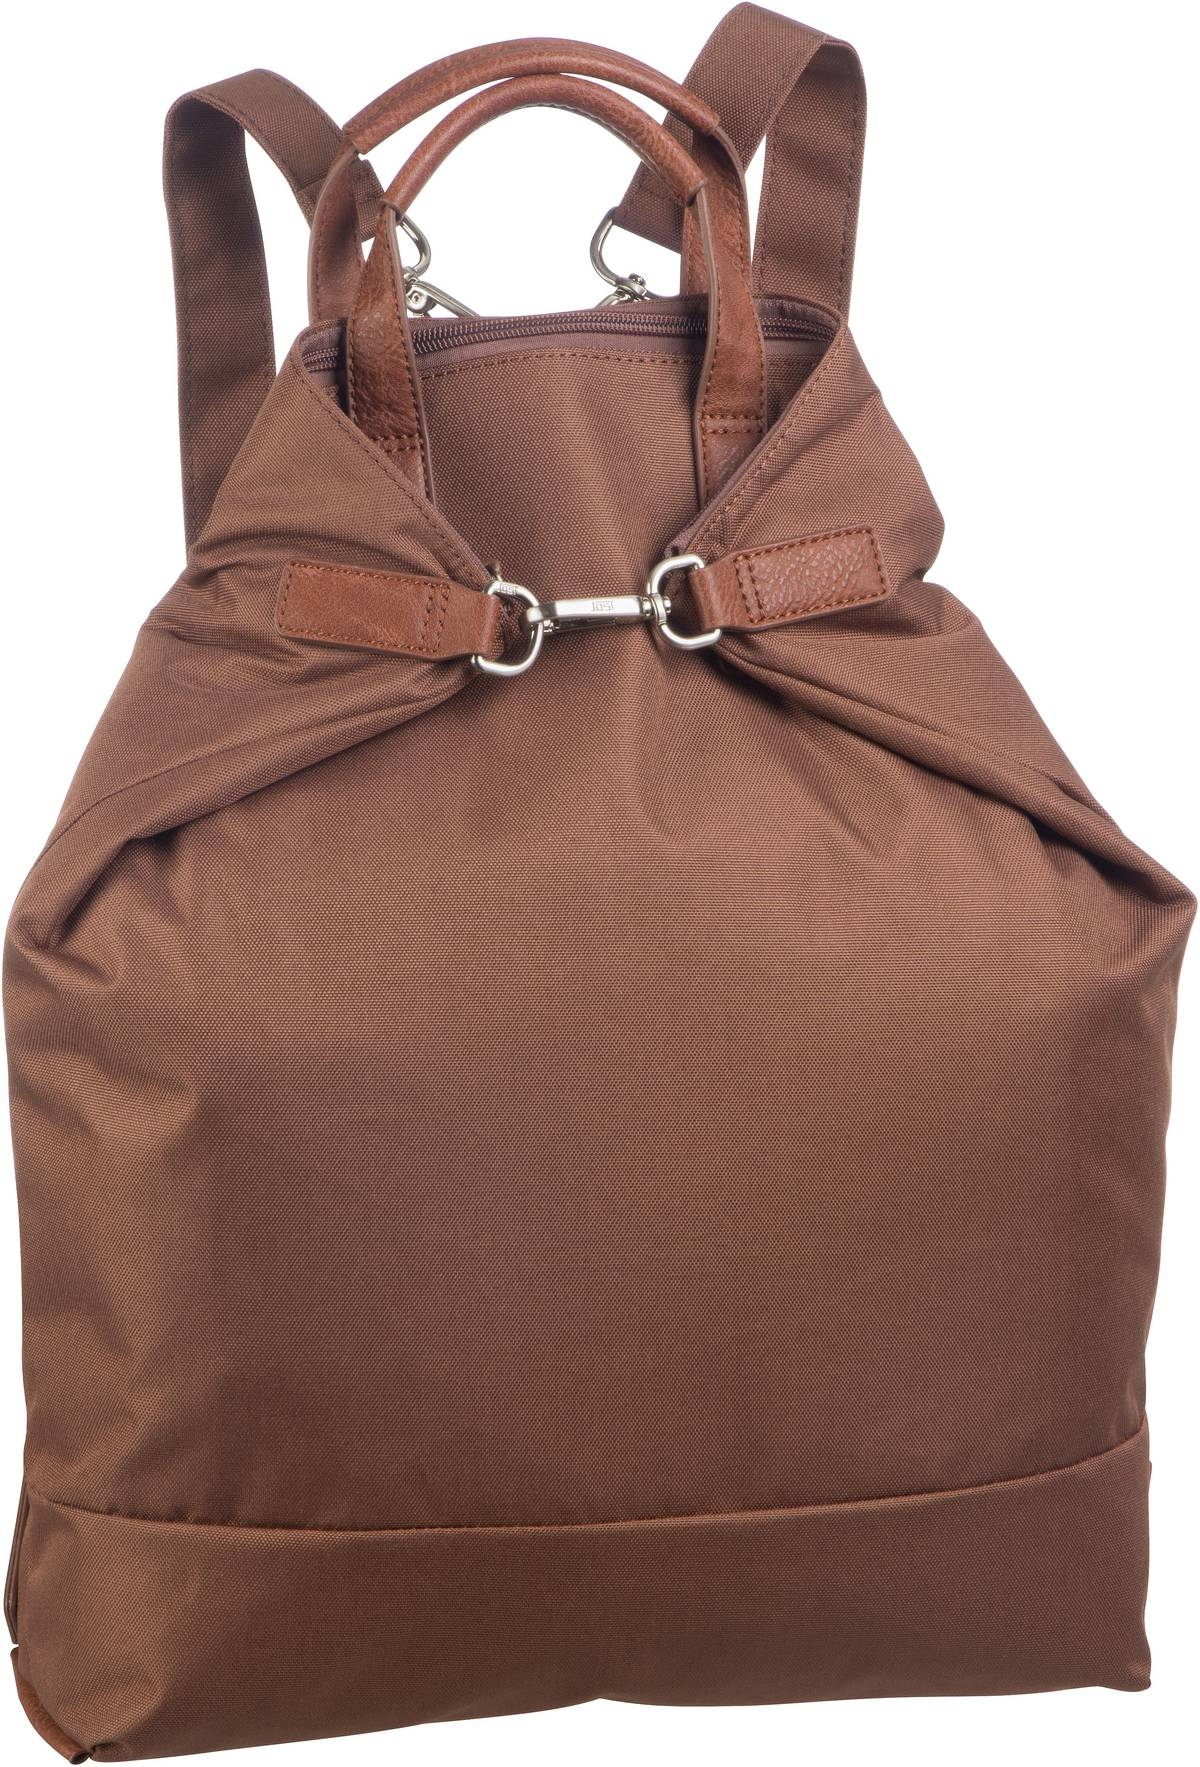 Jost Rucksack / Daypack 1105 X-Change Bag M Mid Brown